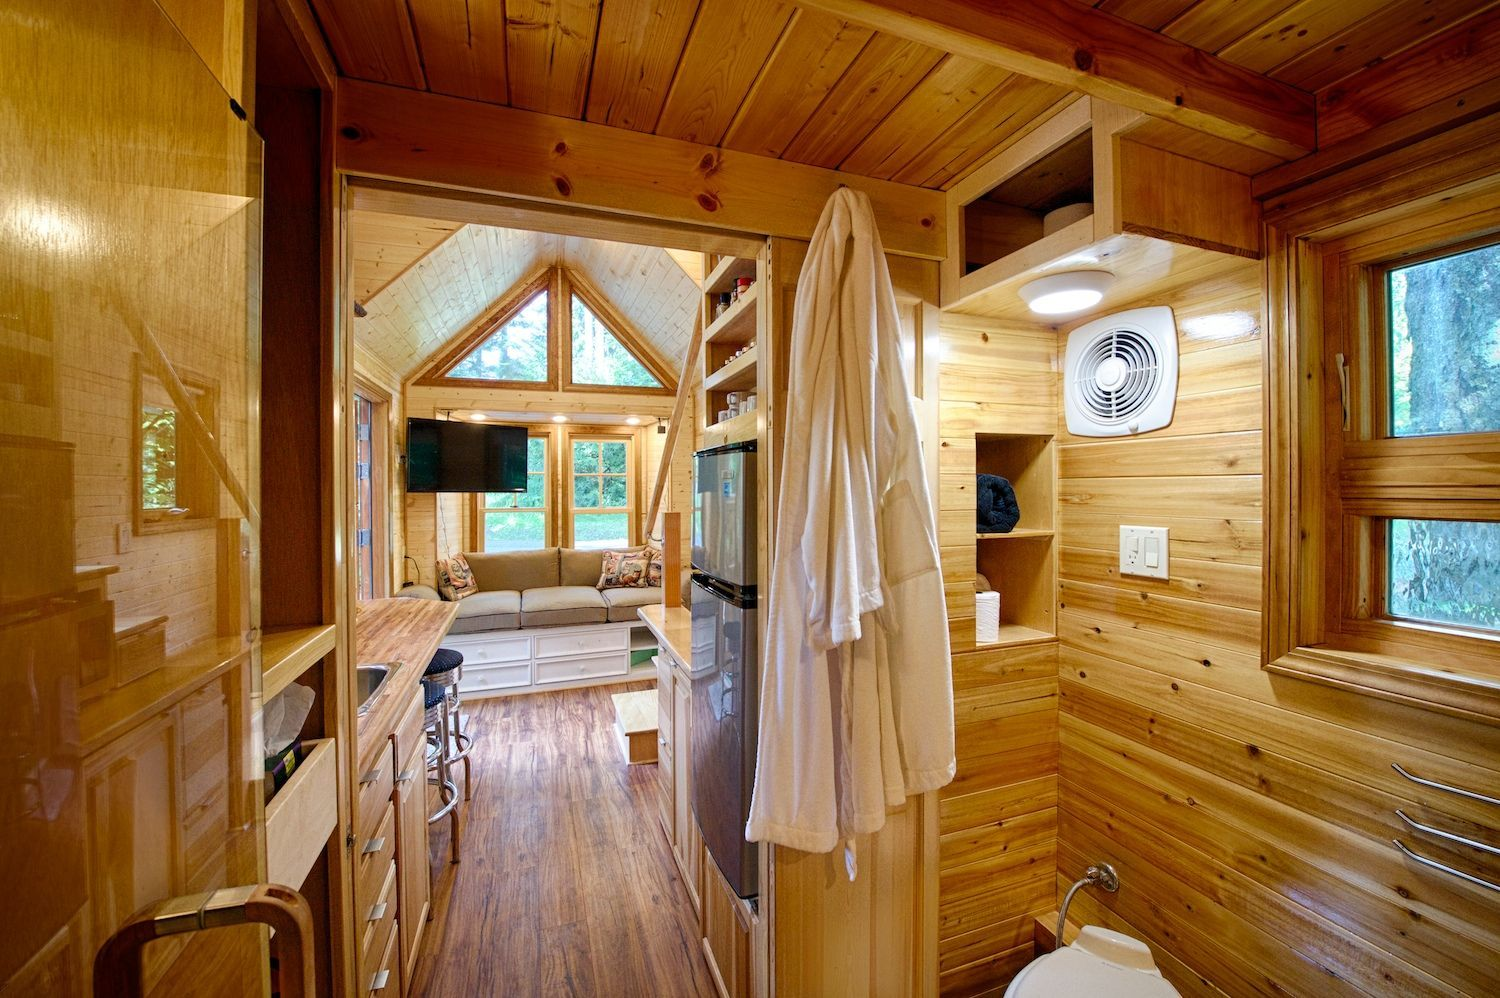 Wood Paneling Is An Ideal Choice For Tiny Home Interiors Due To Its Light  Weight And